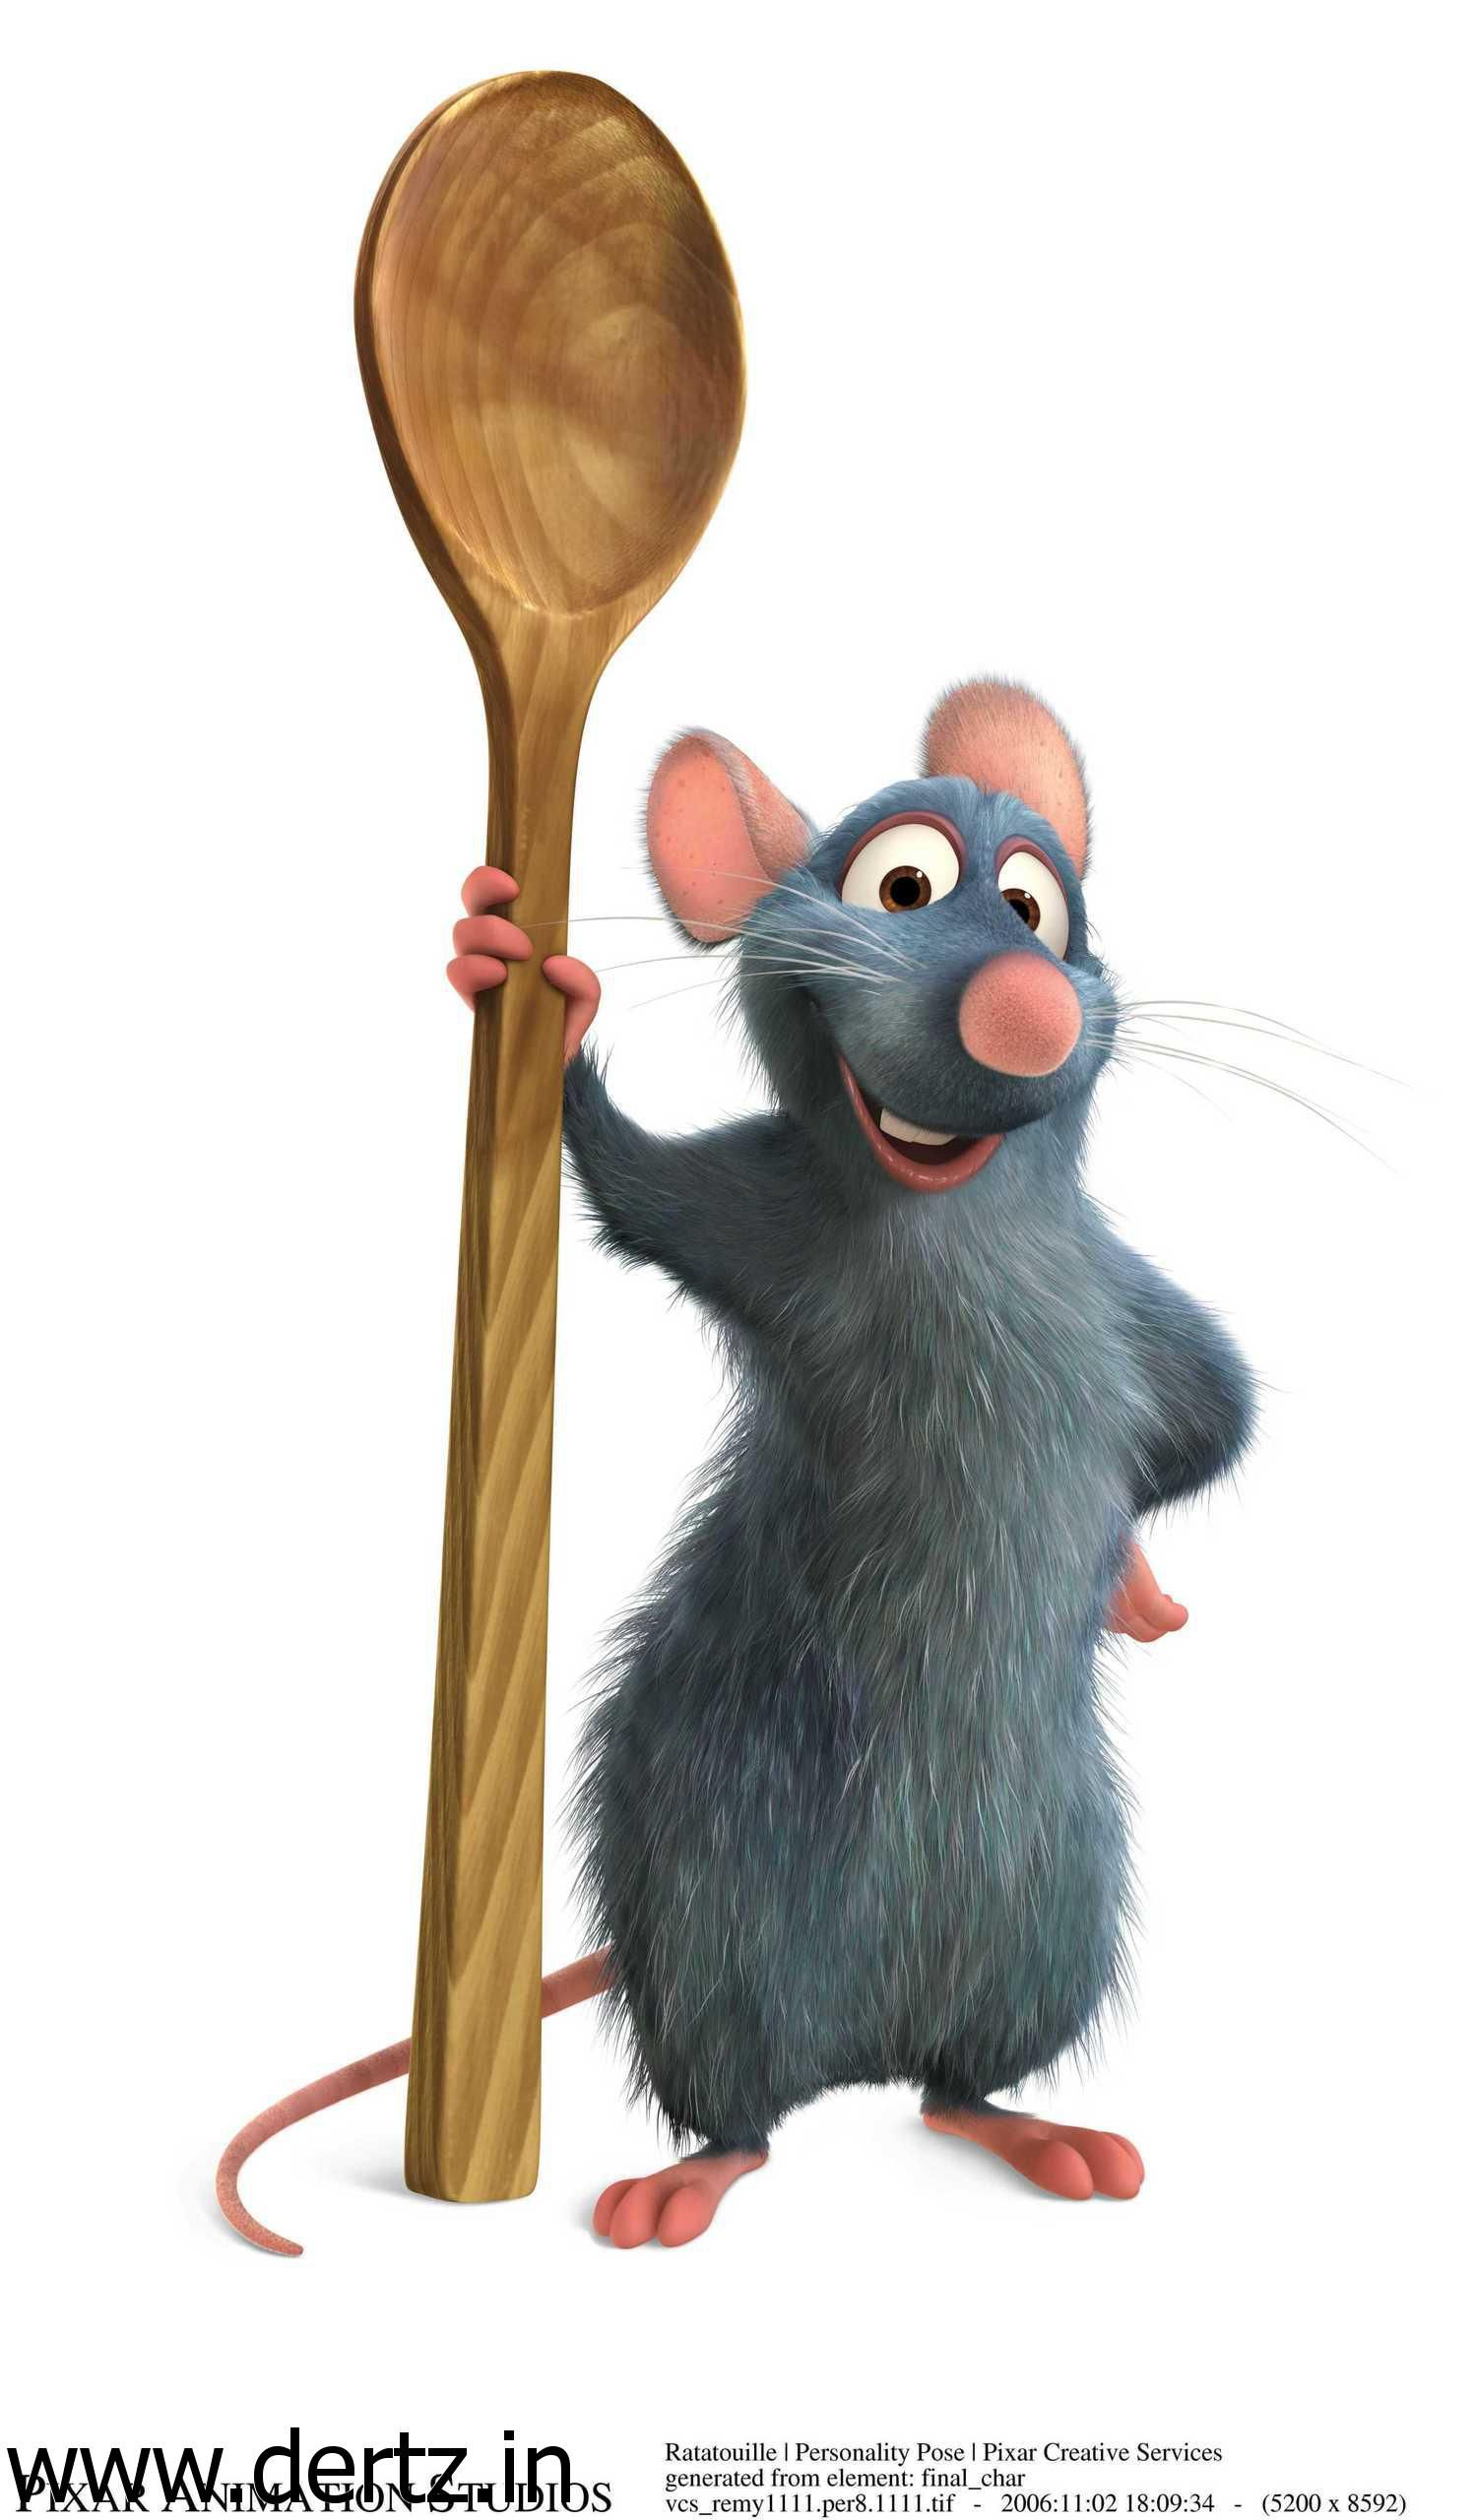 the best place to download ratatouille jar file is http://www.dertz